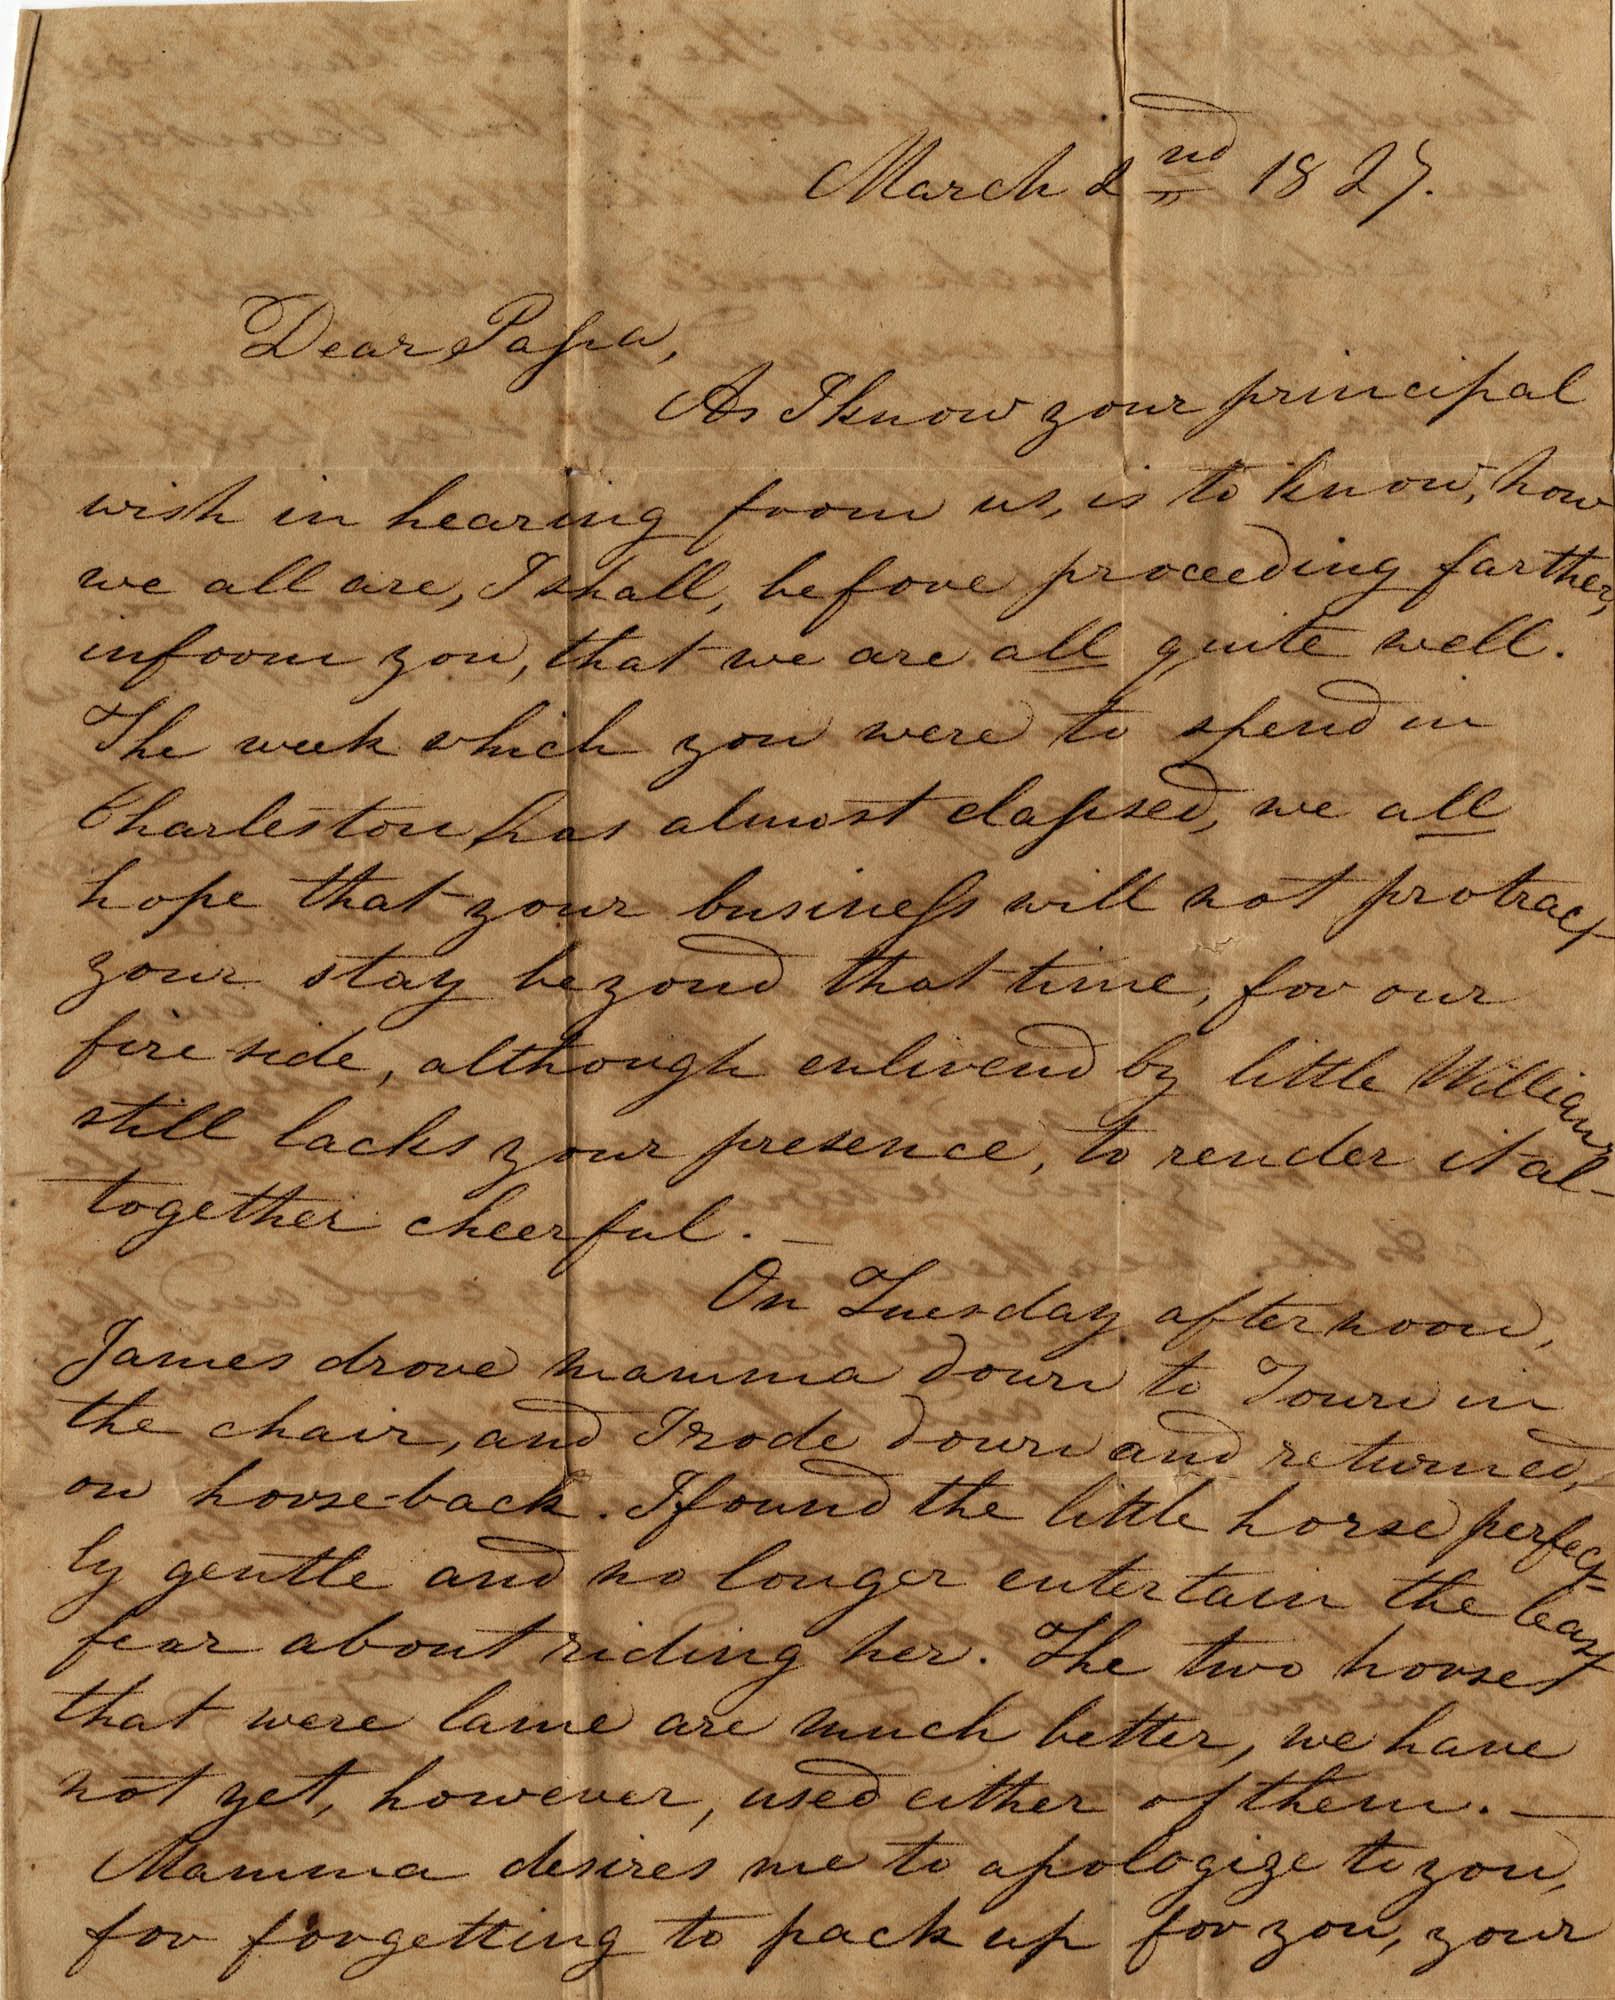 012. Anna Wilkinson to Dr. W. Wilkinson -- March 2, 1825